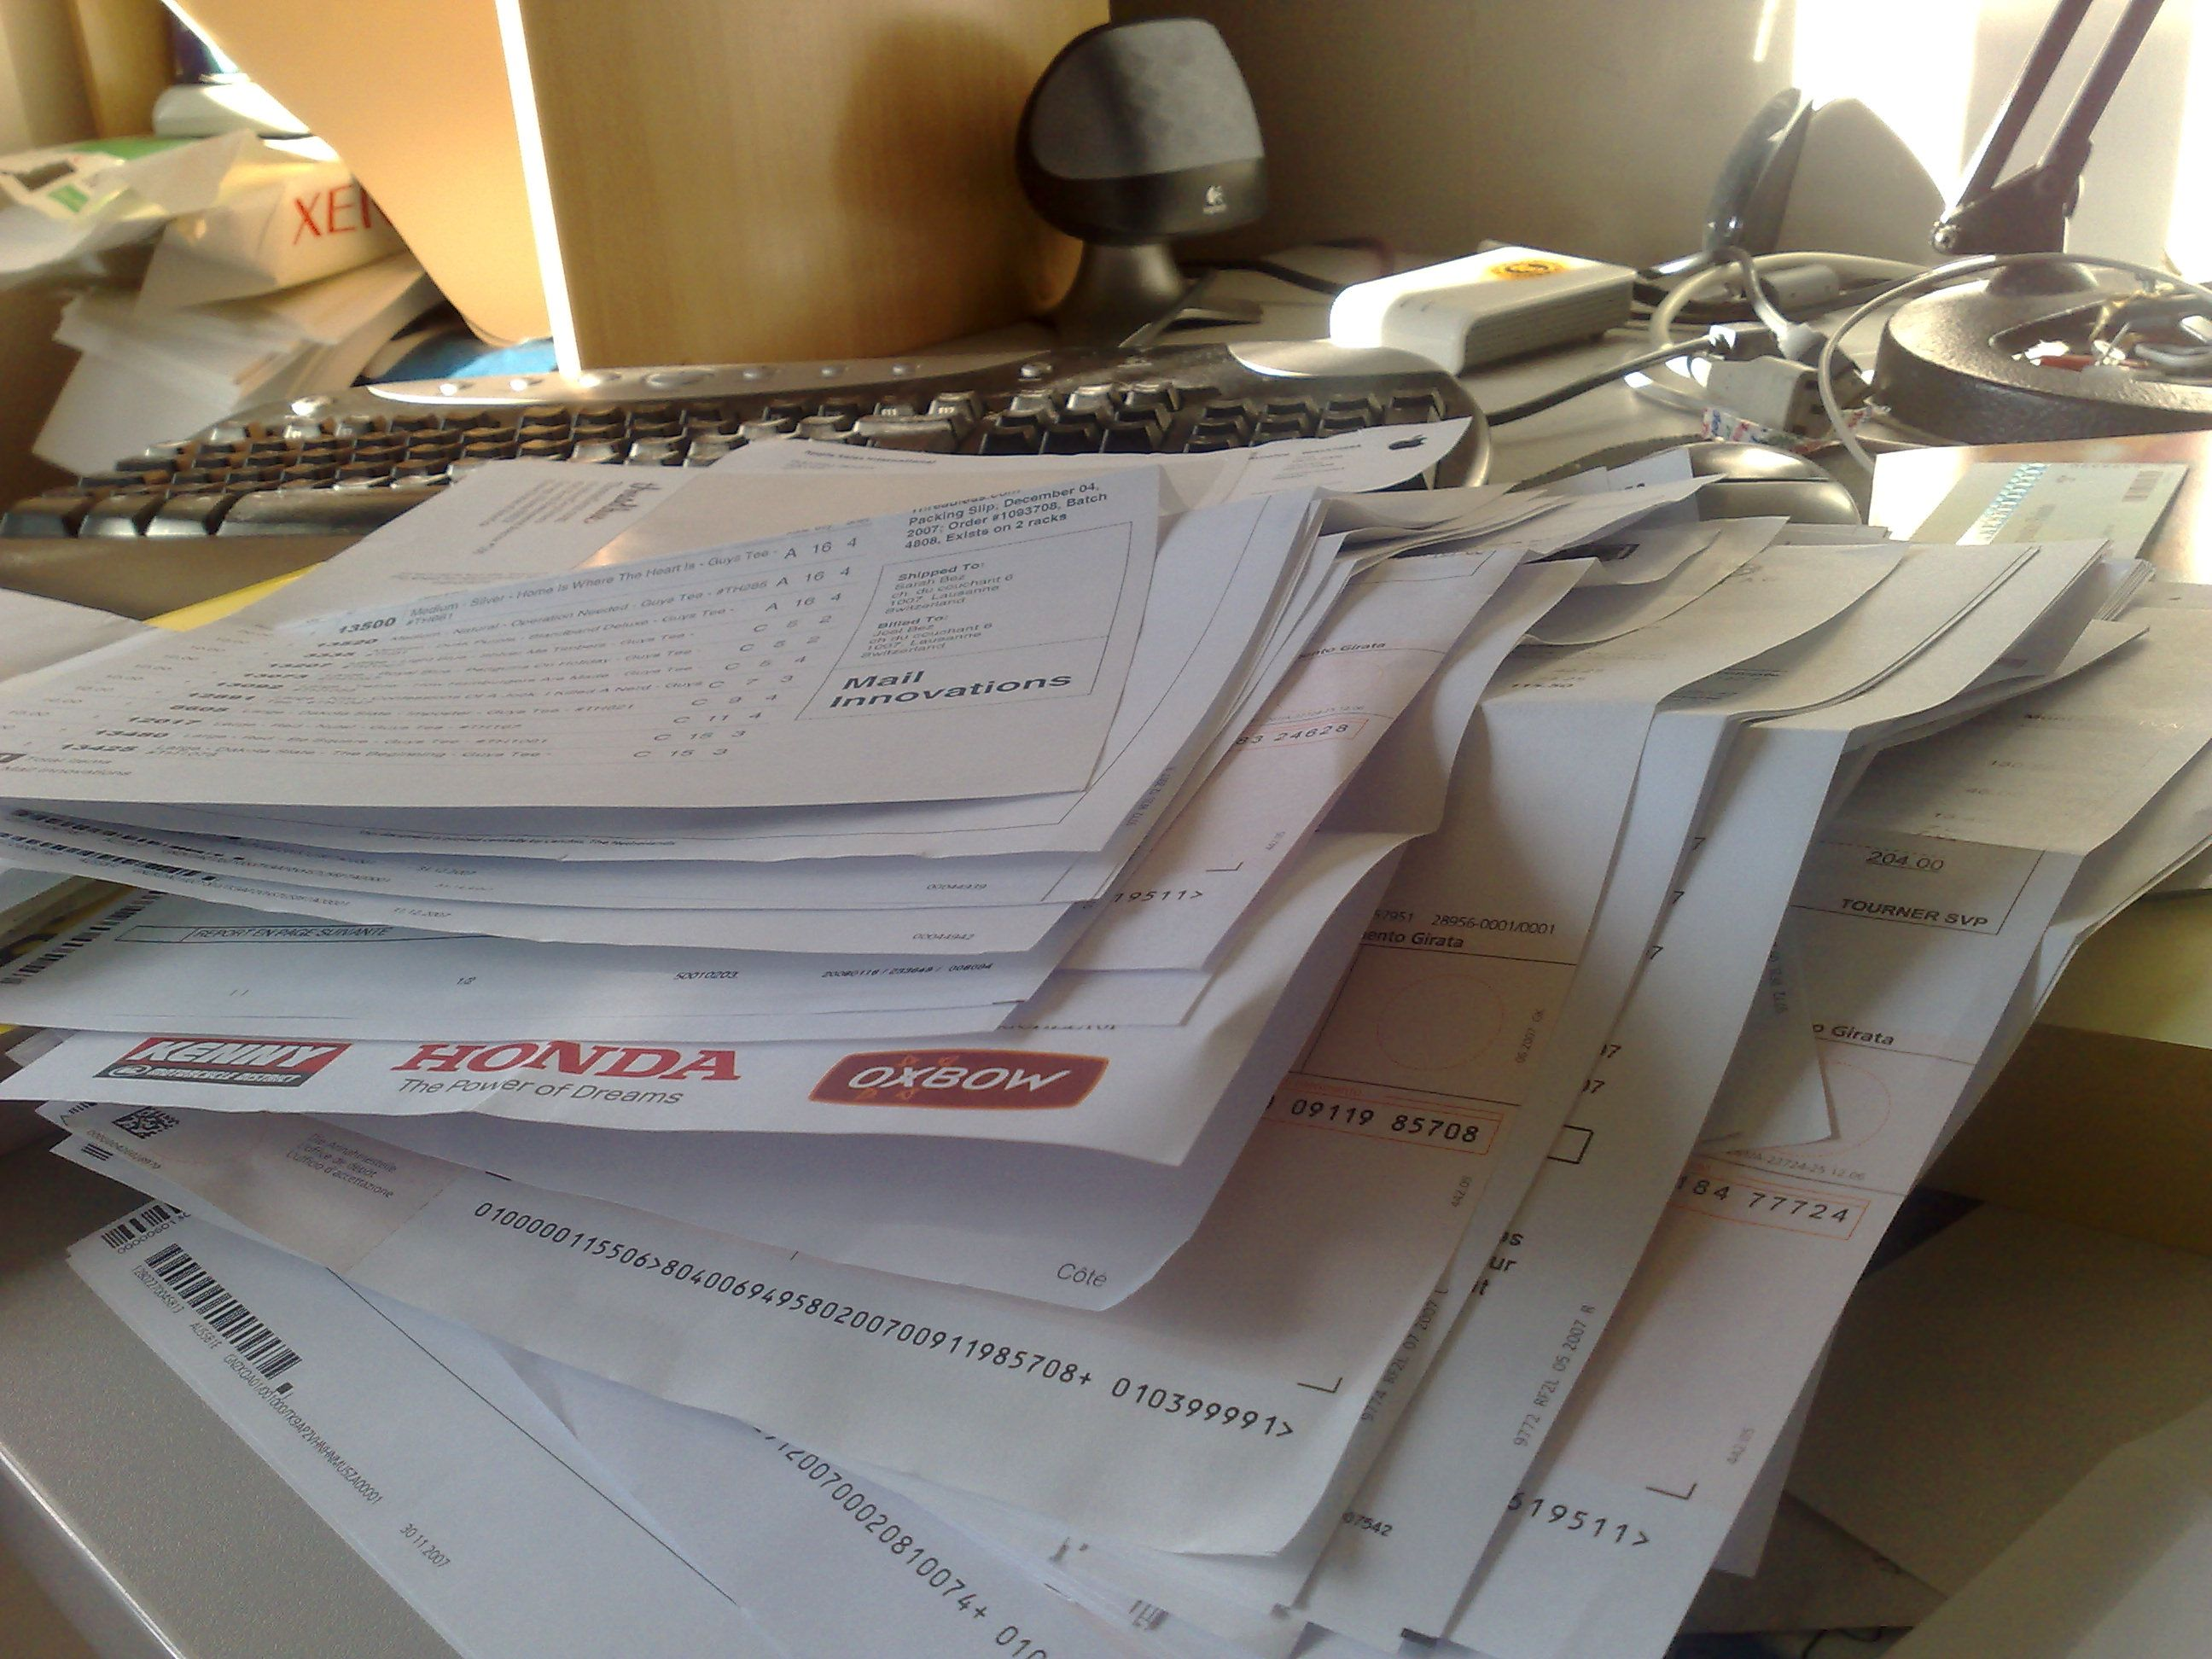 7 Foolproof Tricks To Tame Your Paperwork